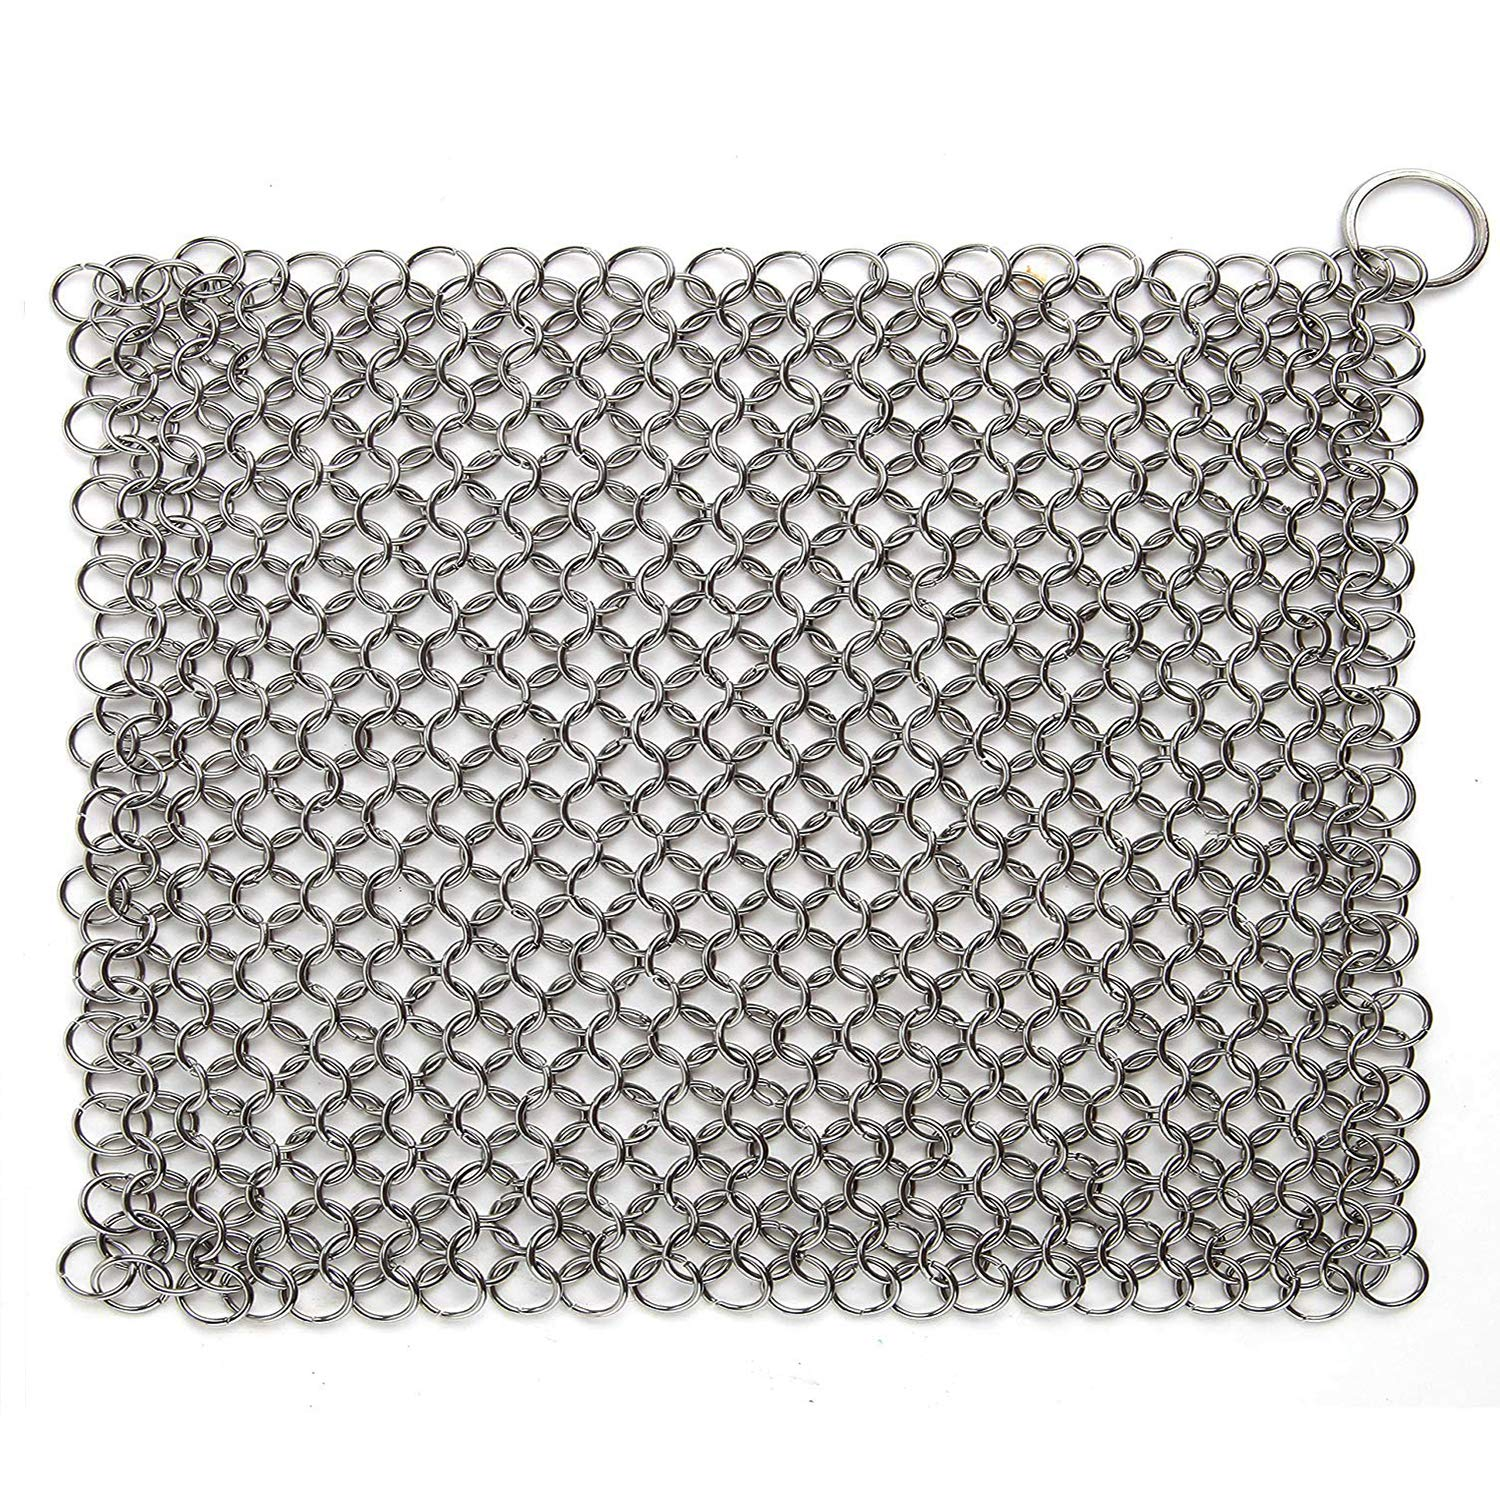 Hulless Chainmail Scrubber 8x6 inch Stainless Steel Rust Proof Scraper, Durable Cast Iron Cleaner for Pots, Skillets, Griddle Pans, BBQ Grills and More, with Hanging Ring.